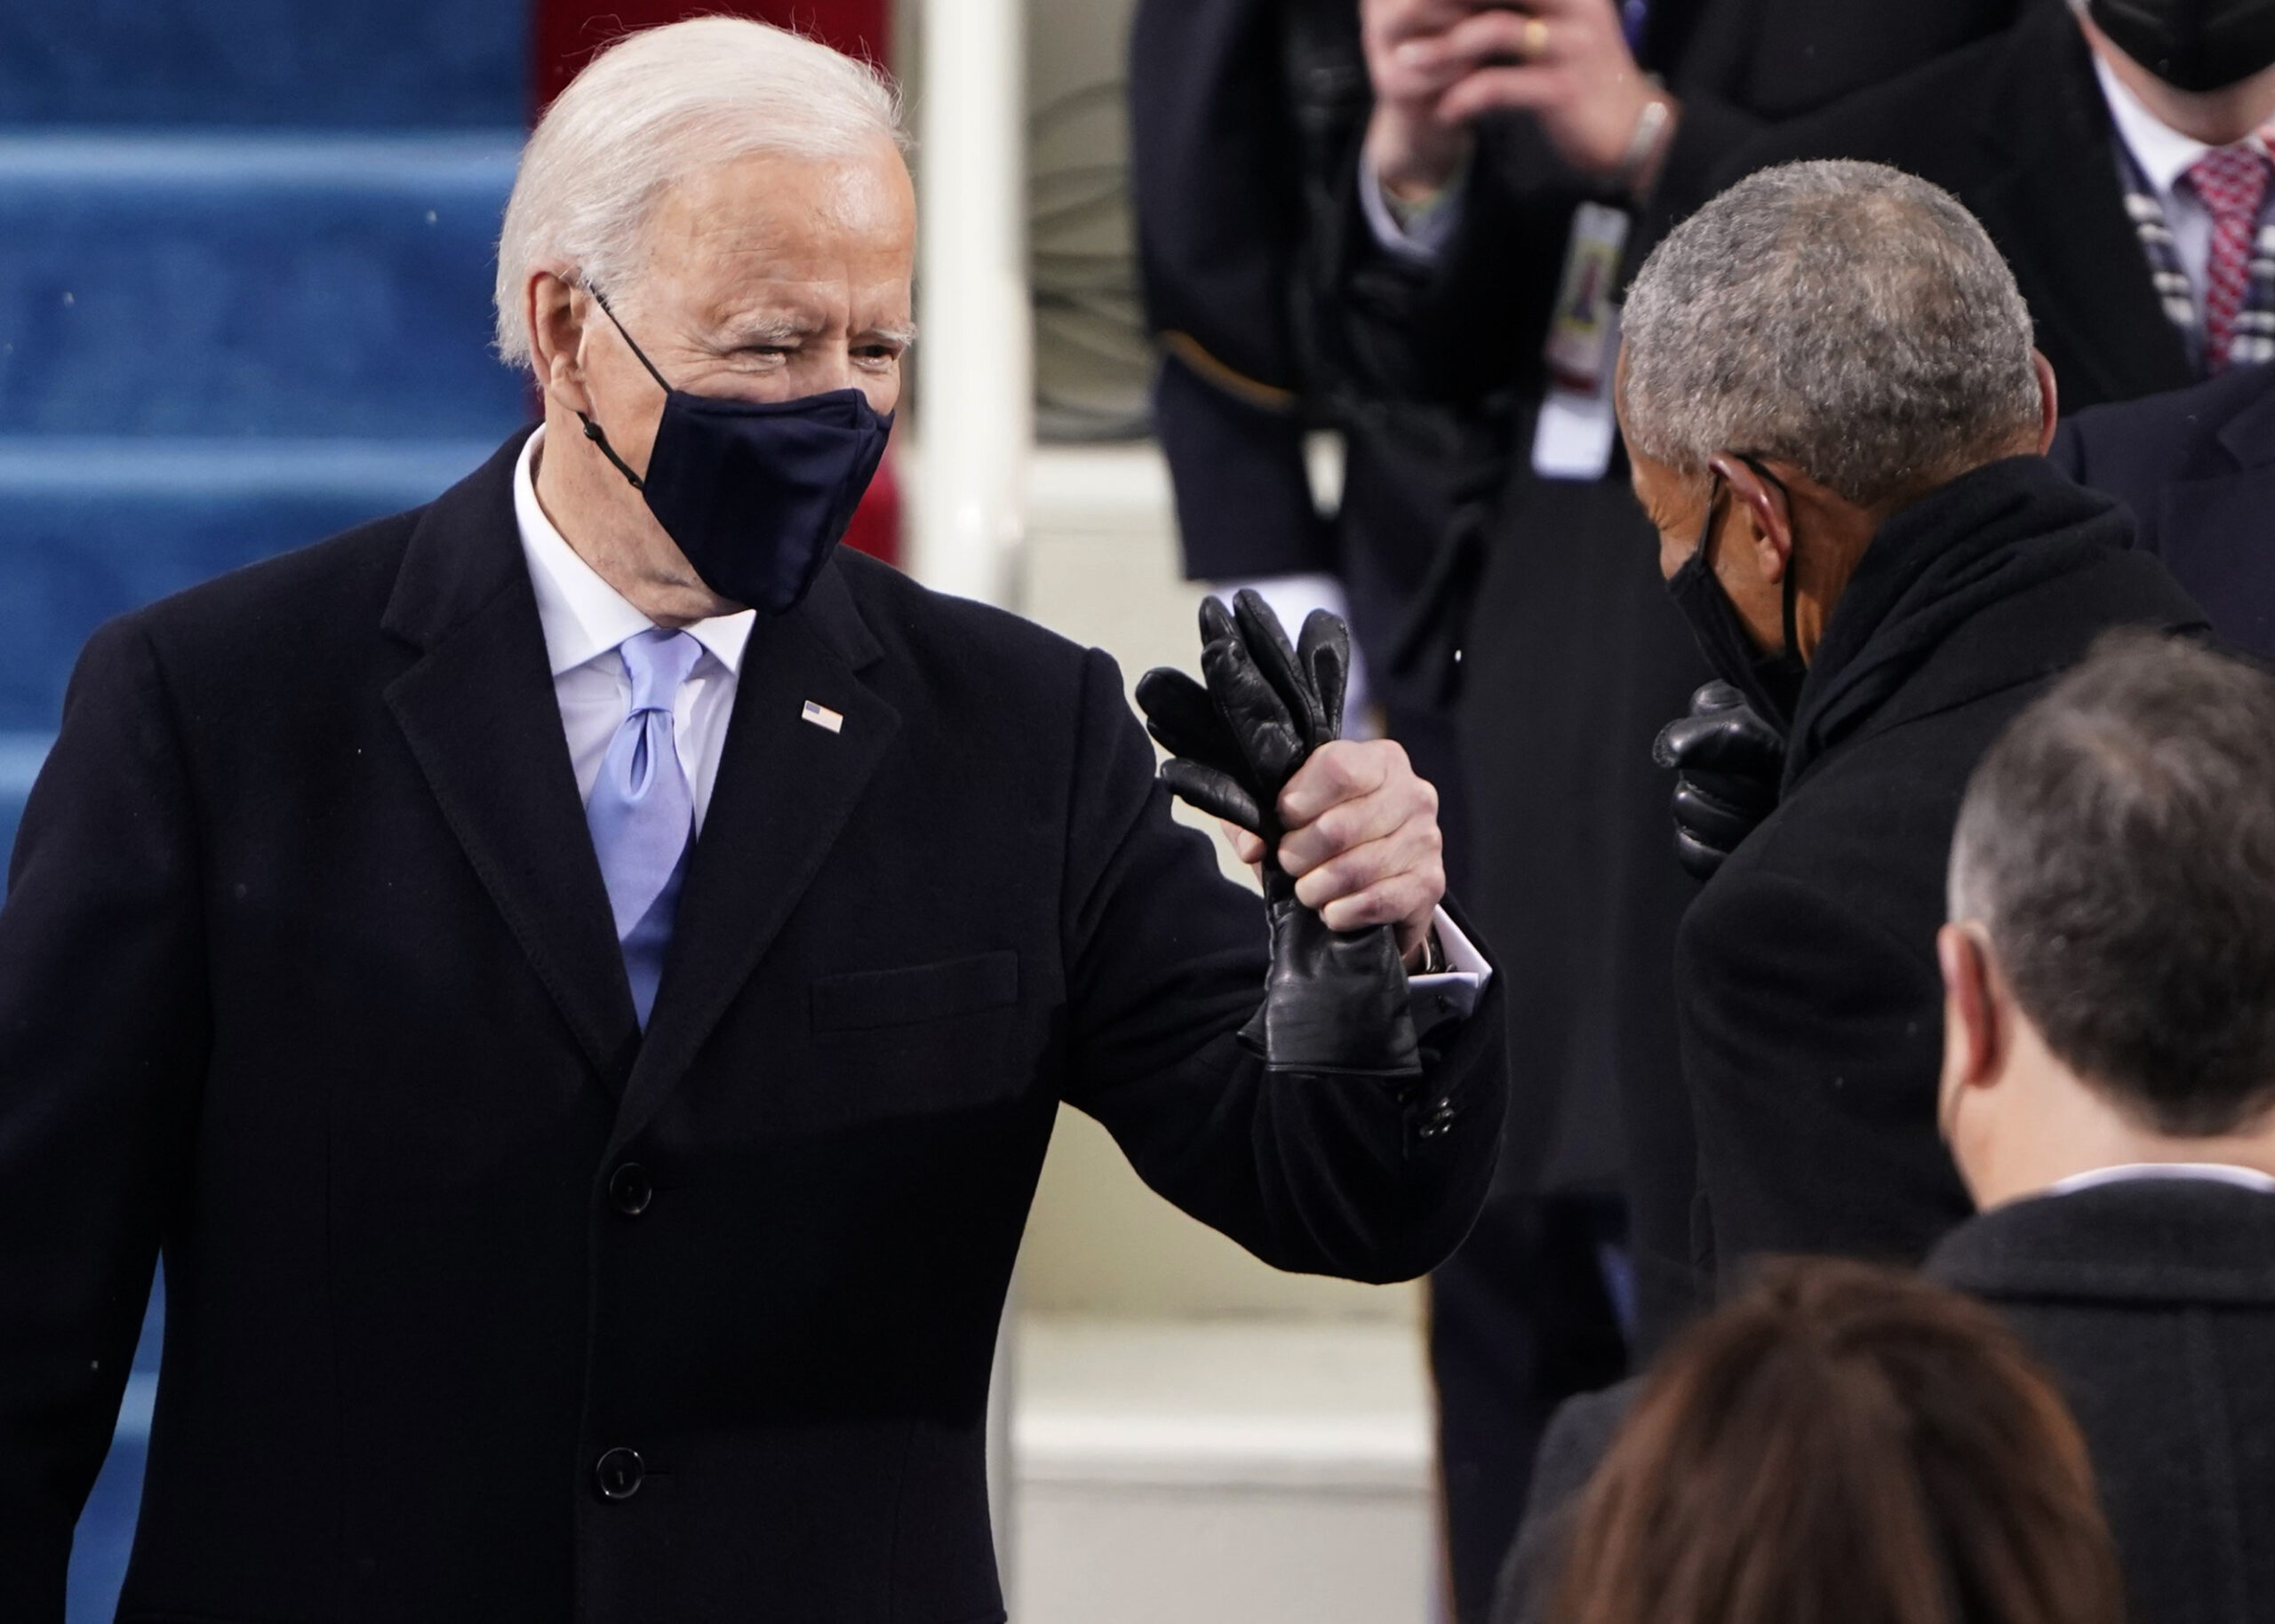 Biden's Equality Act is a danger to women's and conscience rights